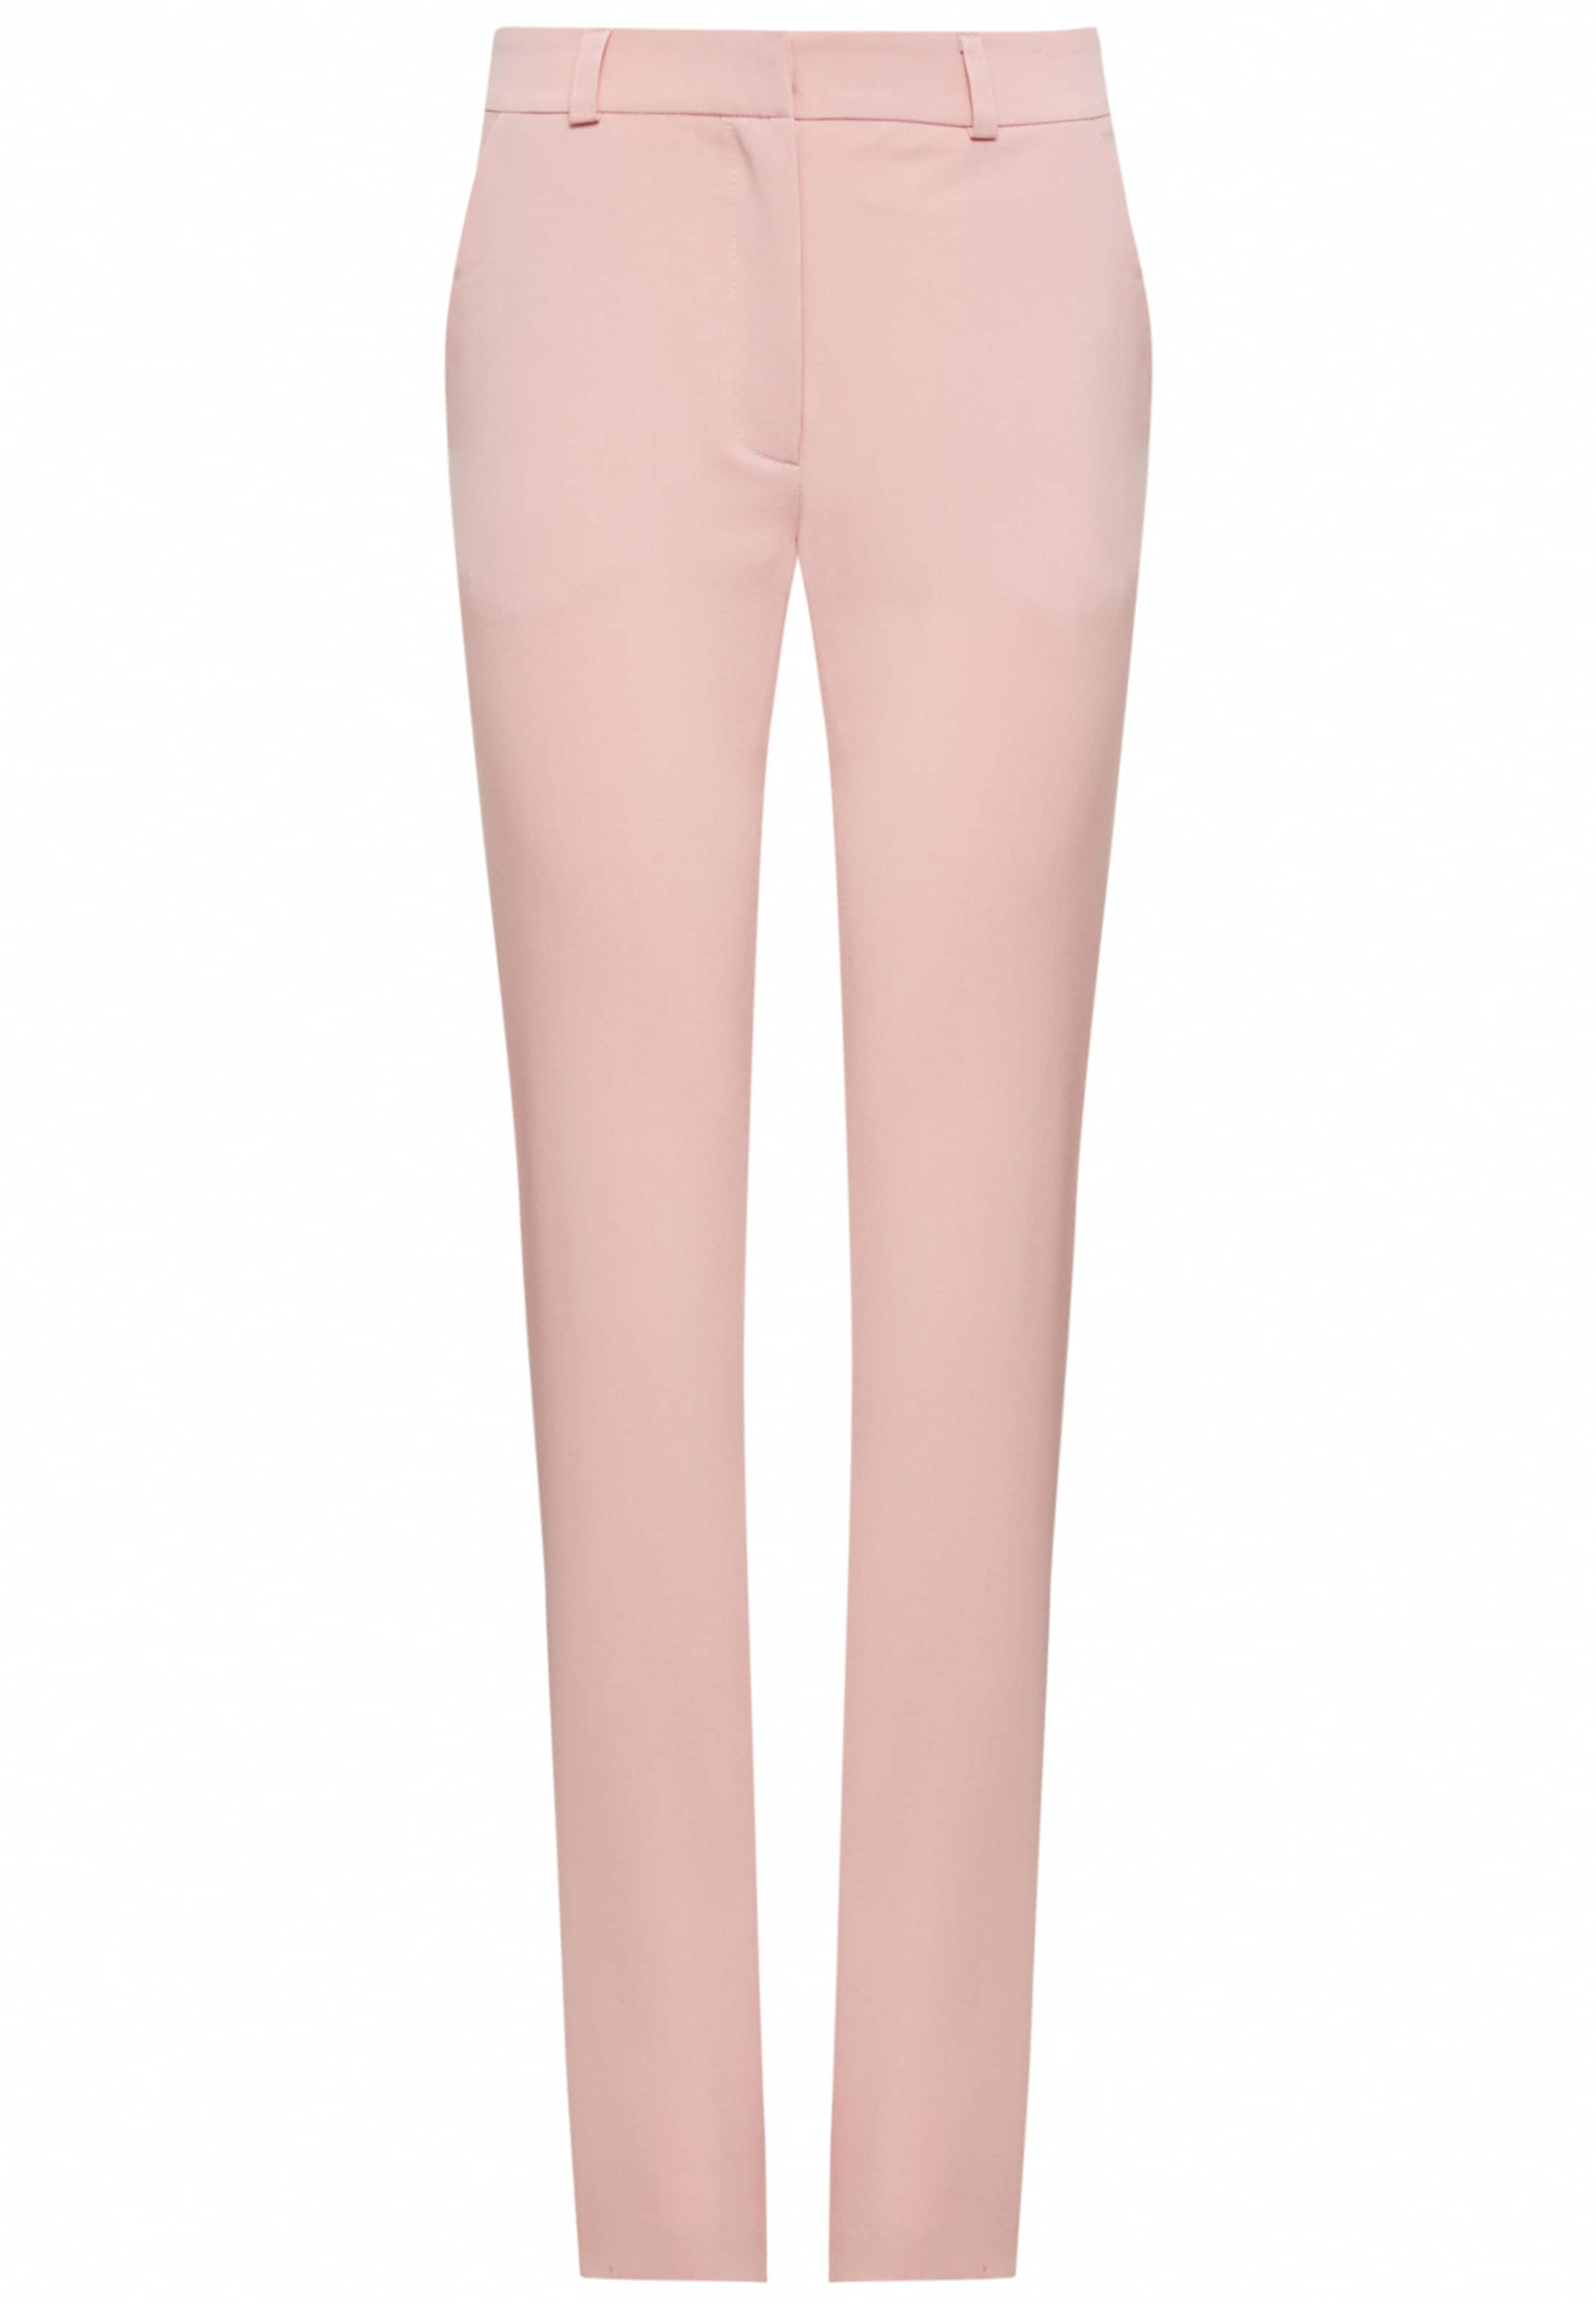 Mymo In In Hose Mymo Hose Rosa Rosa 5RjL4A